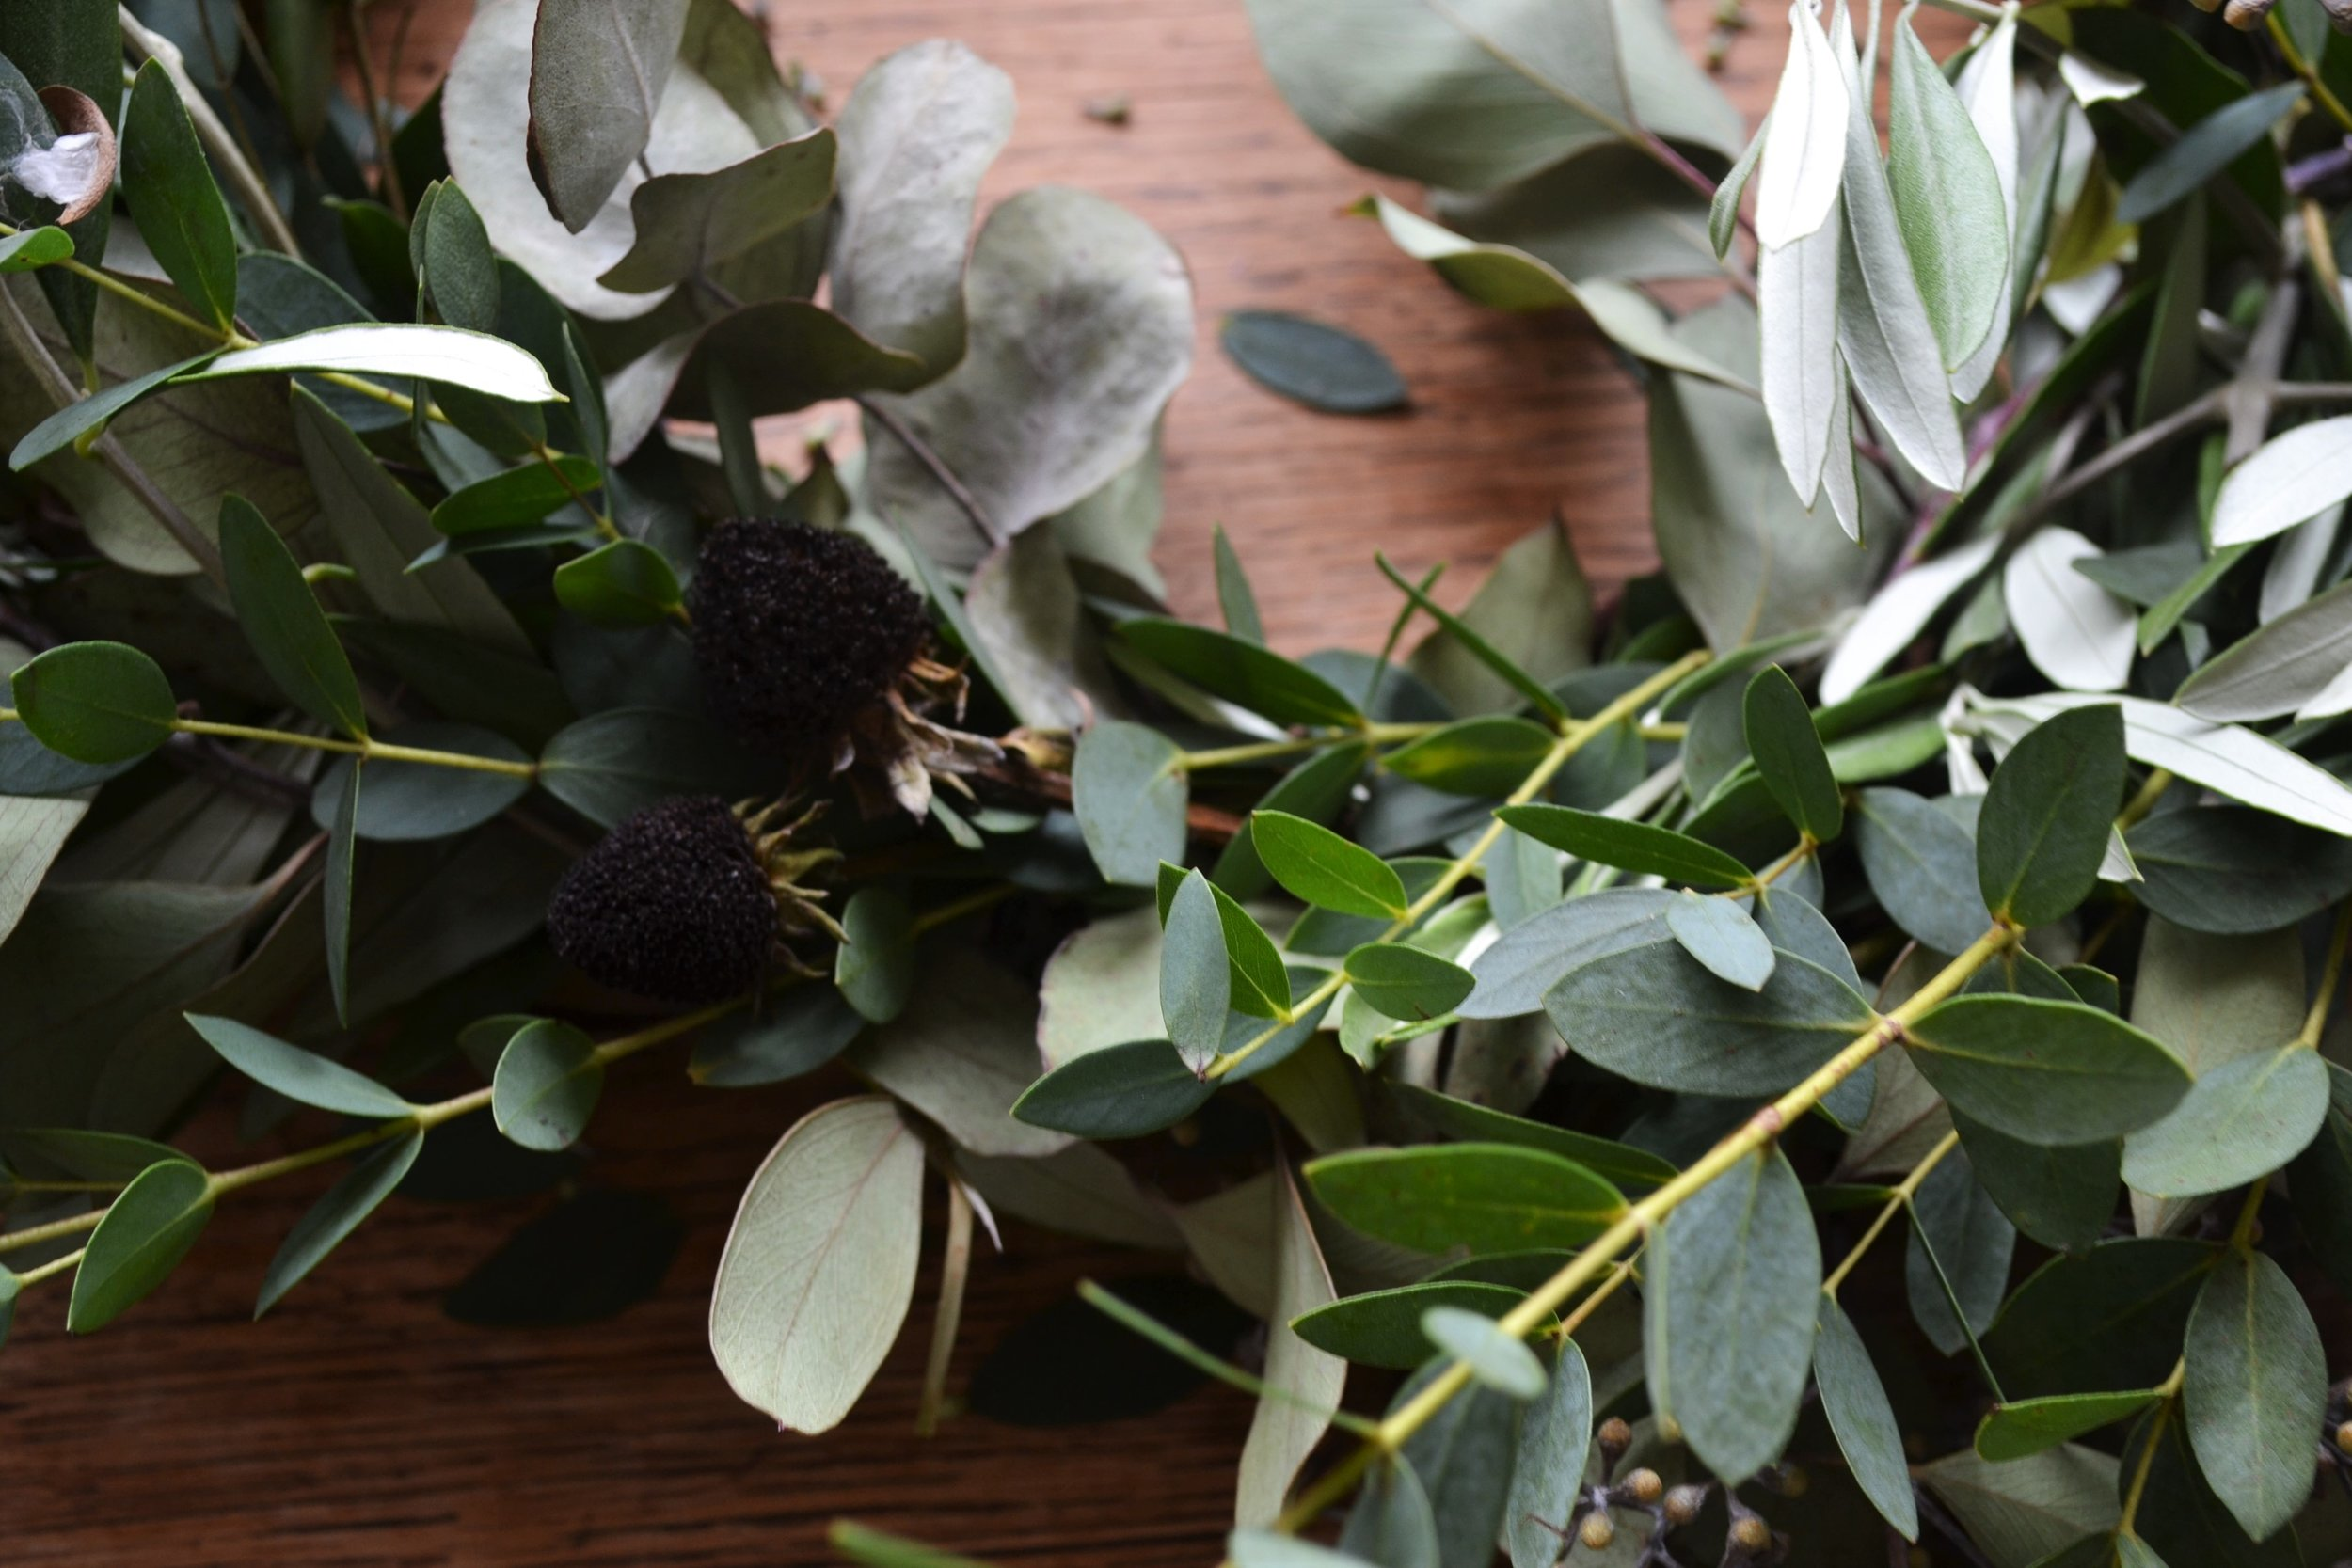 How-to-make-an-autumn-wreath-webb-and-farrer-brighton-flower-workshop (9).JPG